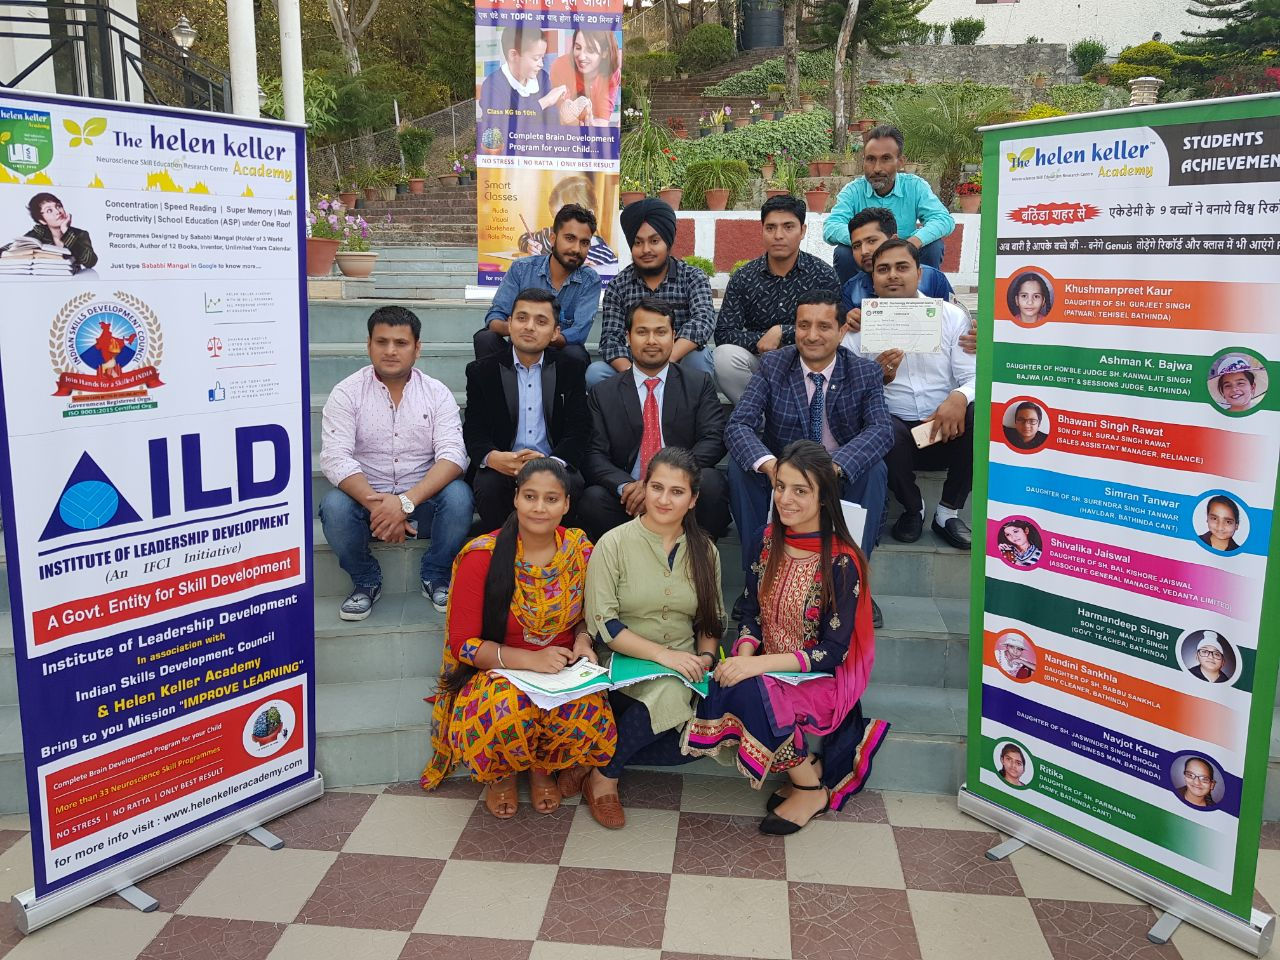 Indian Skills Development Council Improve Memory Learning training at Shimla